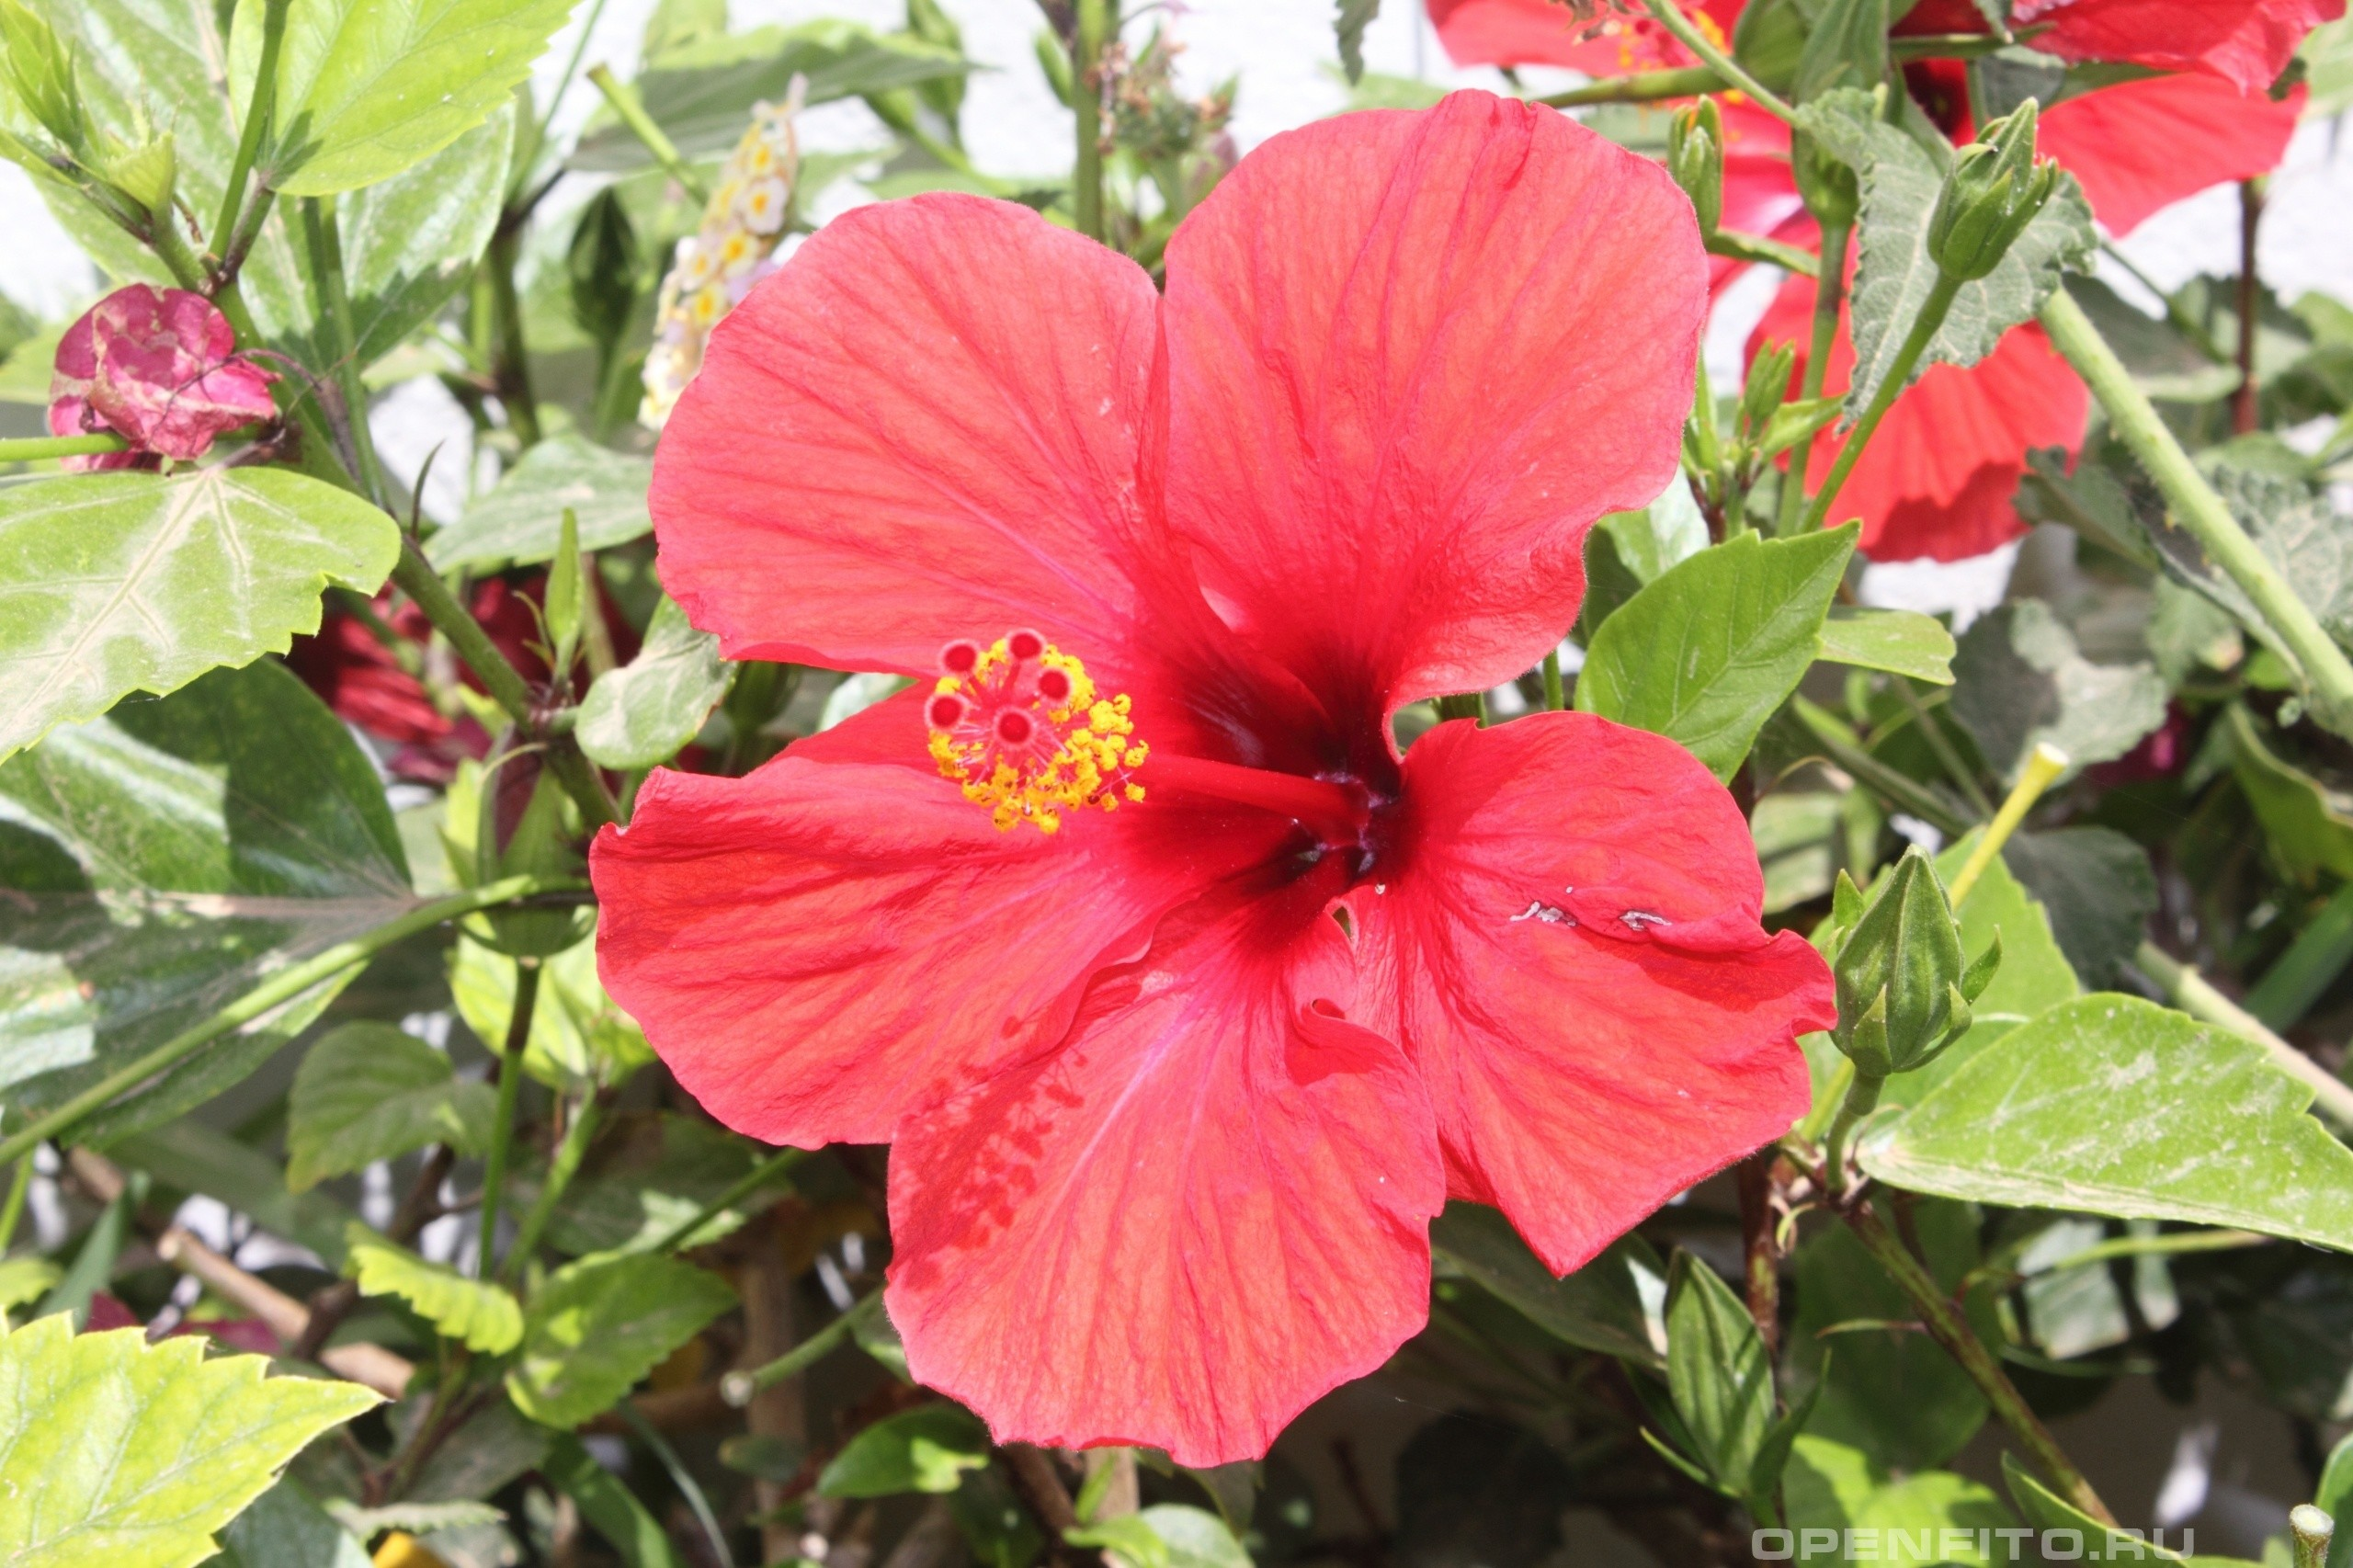 Res: 2560x1706, Best images of Hibiscus Hibiscus 1080p wallpapers ...